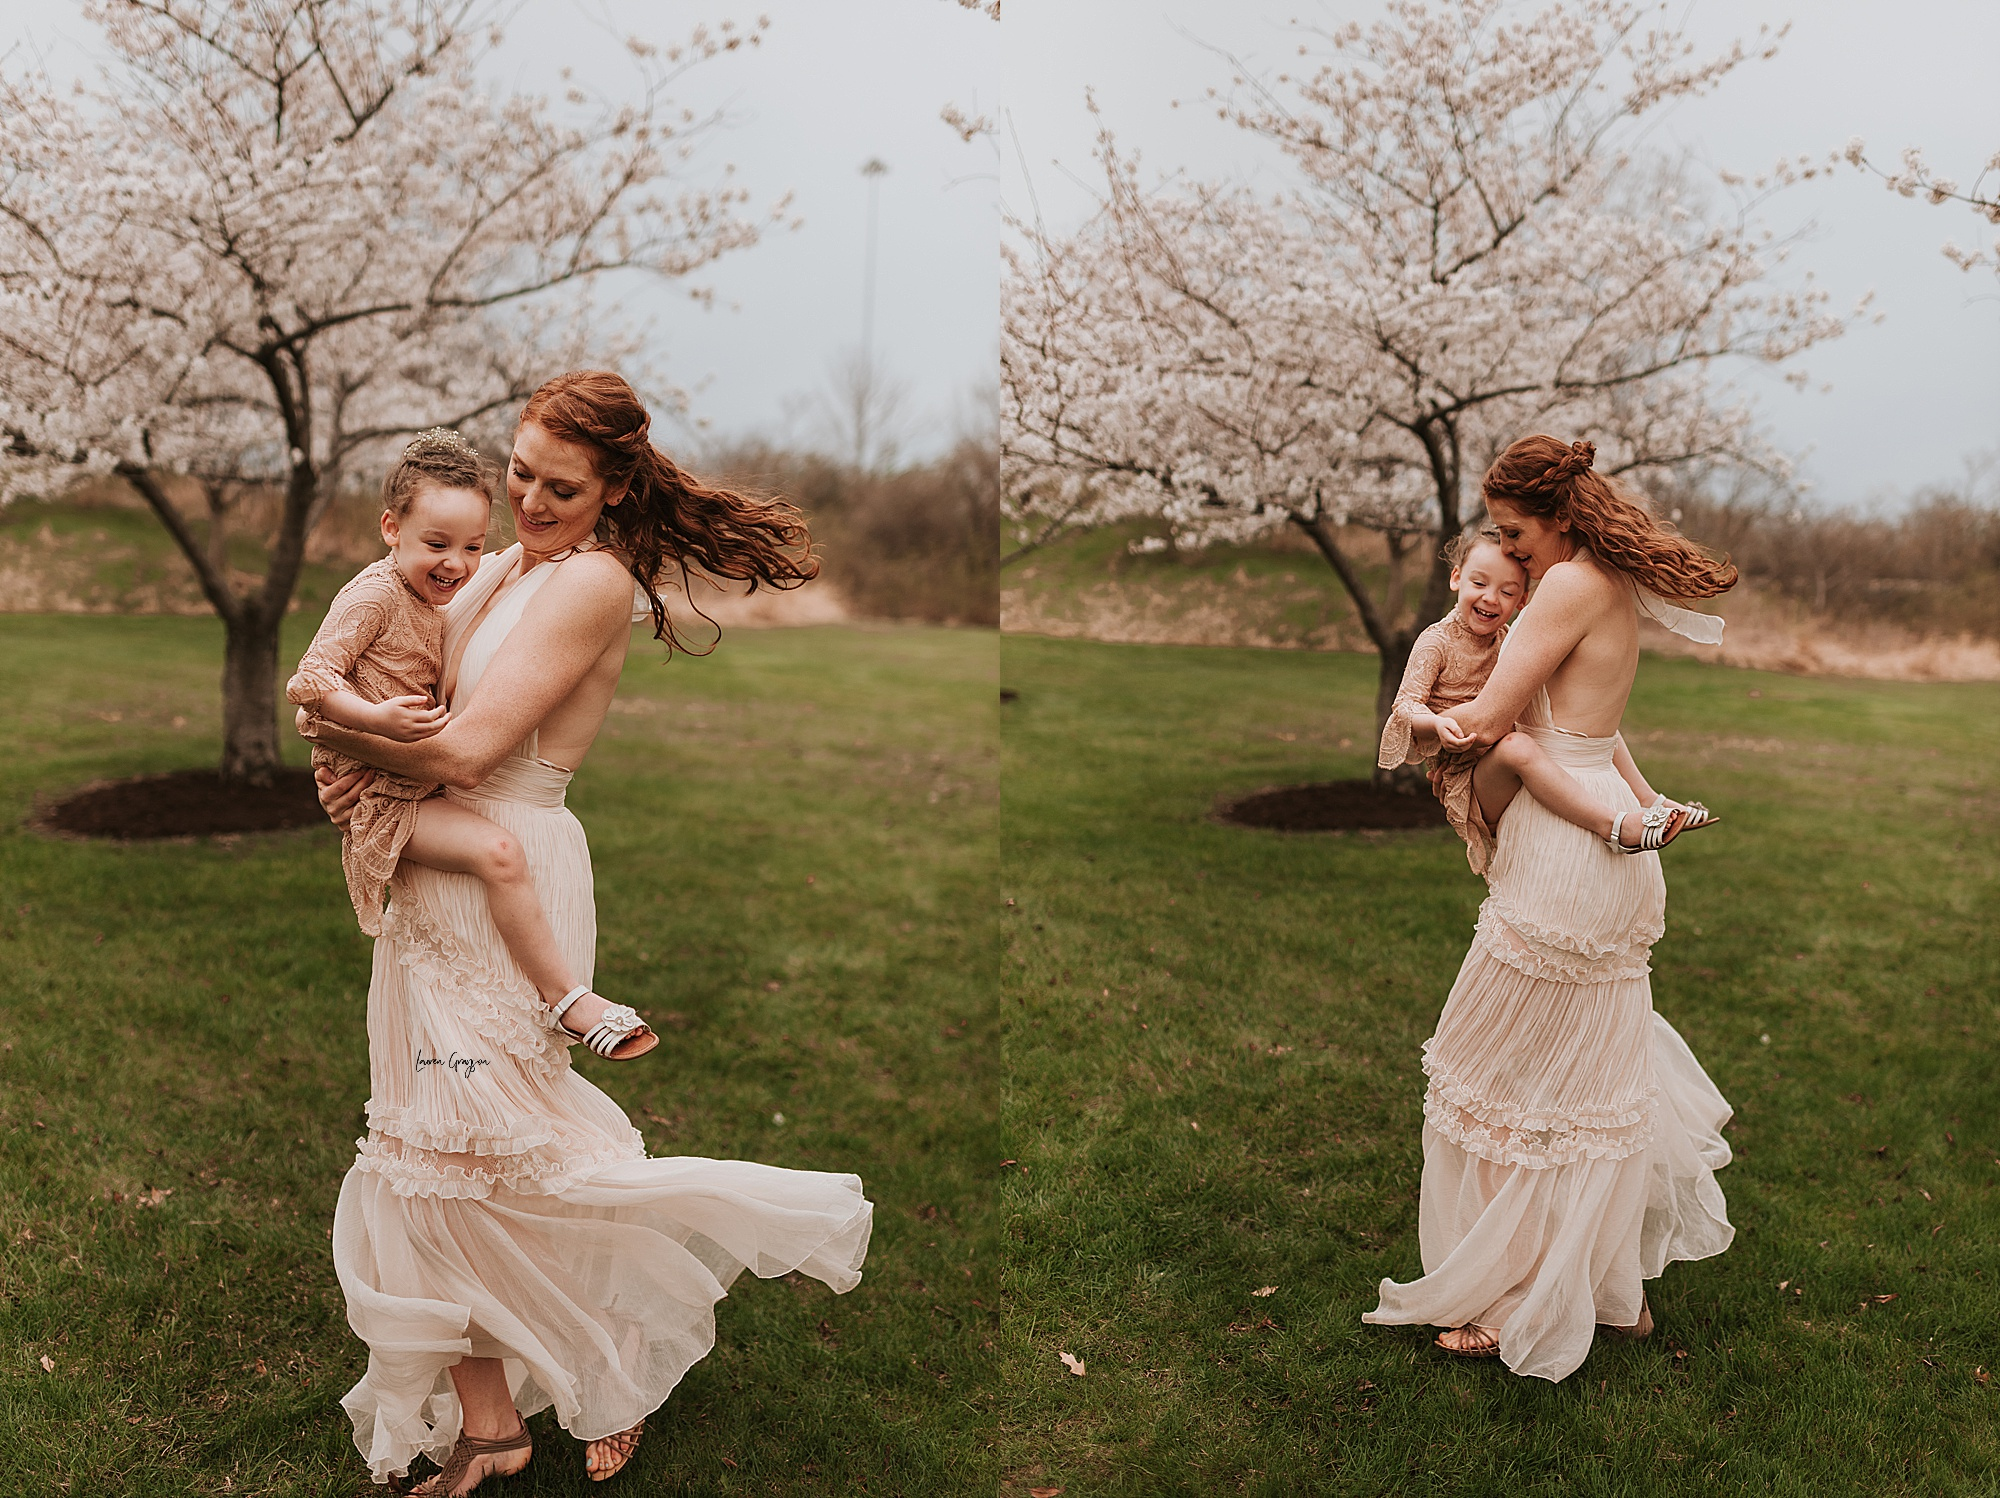 lauren-grayson-photography-cleveland-ohio-motherhood-family-child-photo-session-cherry-blossoms_0027.jpg